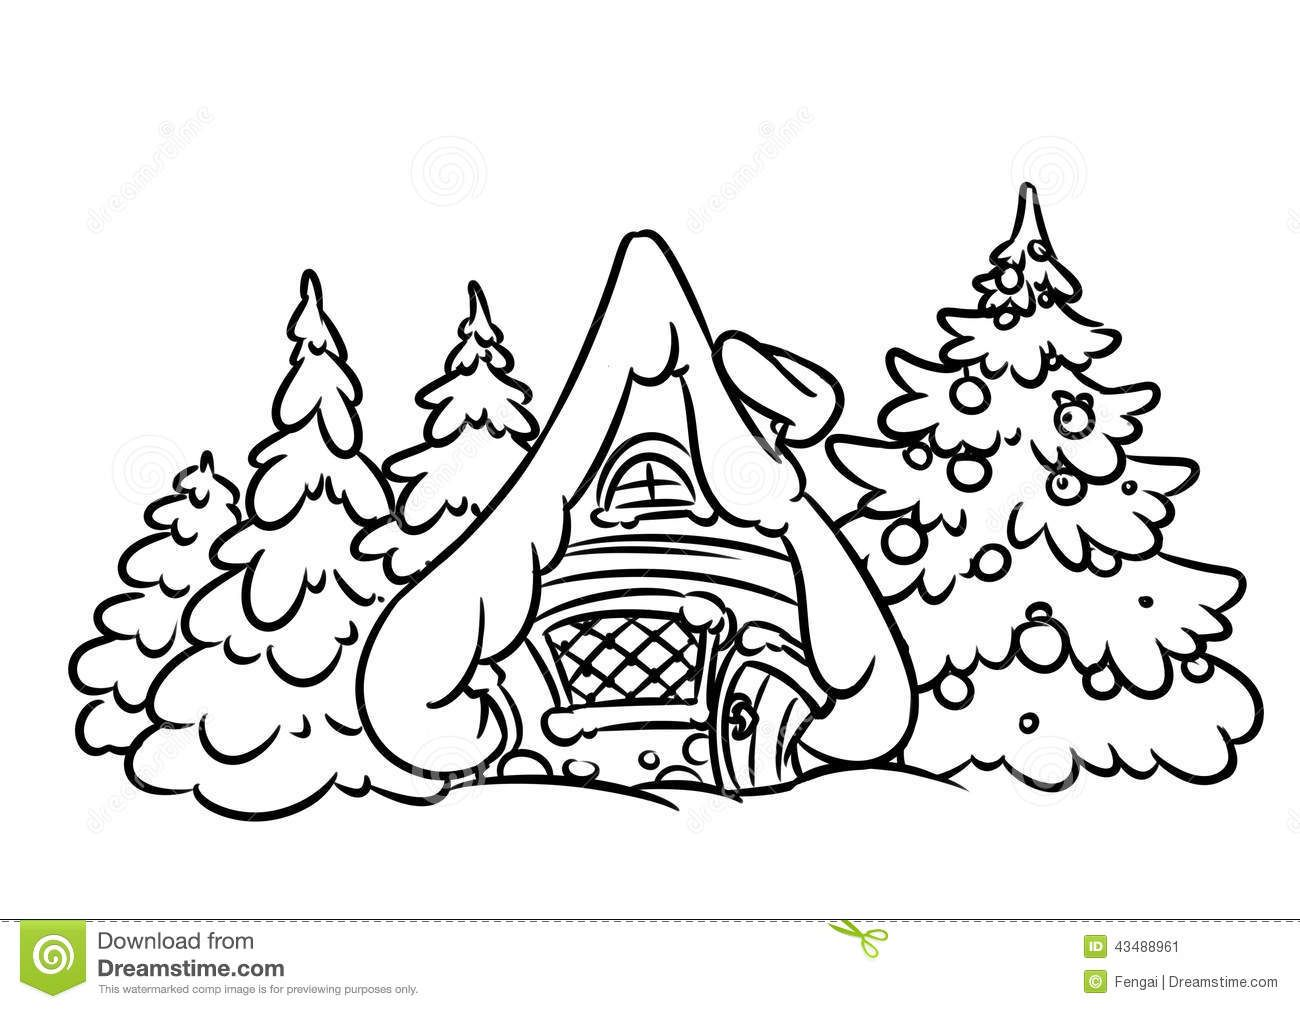 snow house - Cerca con Google   crafts in general   Pinterest   Craft